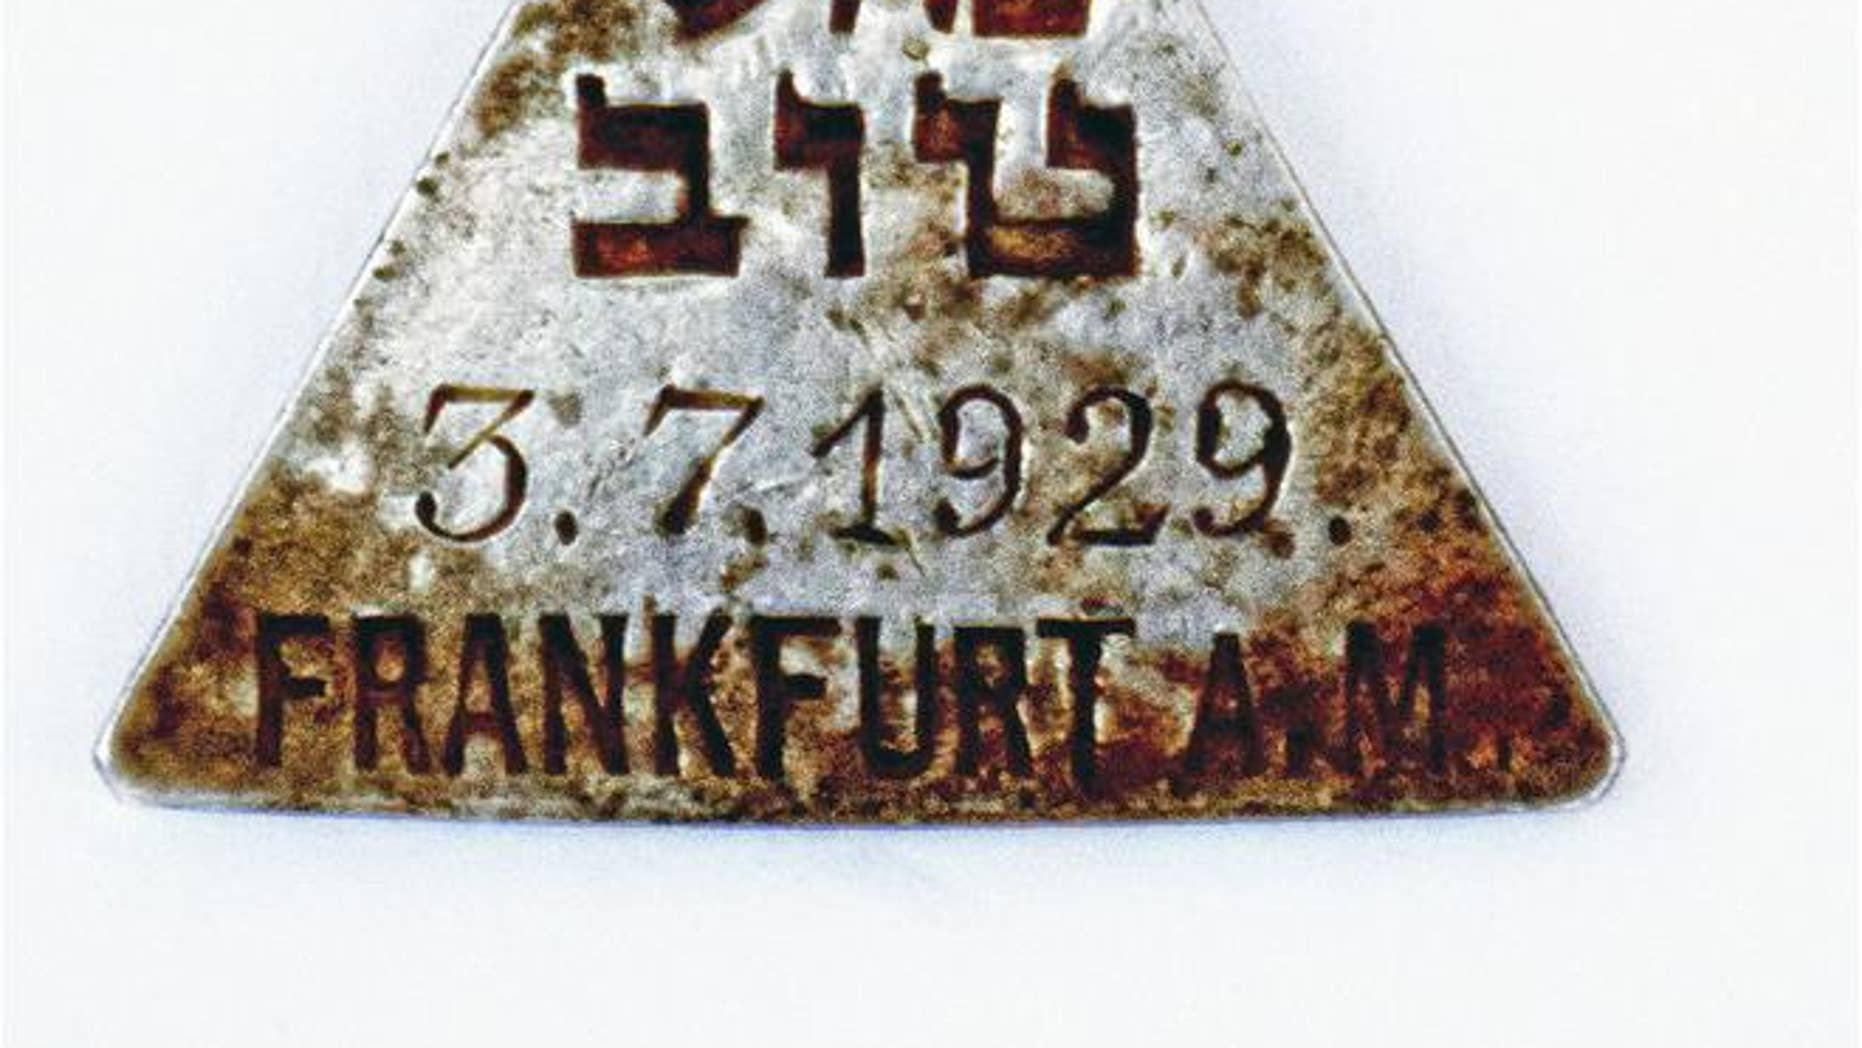 The discovery of a pendant belonging to Holocaust victim Karoline Cohn, 14, has led to a reunion of her relatives from across the globe.